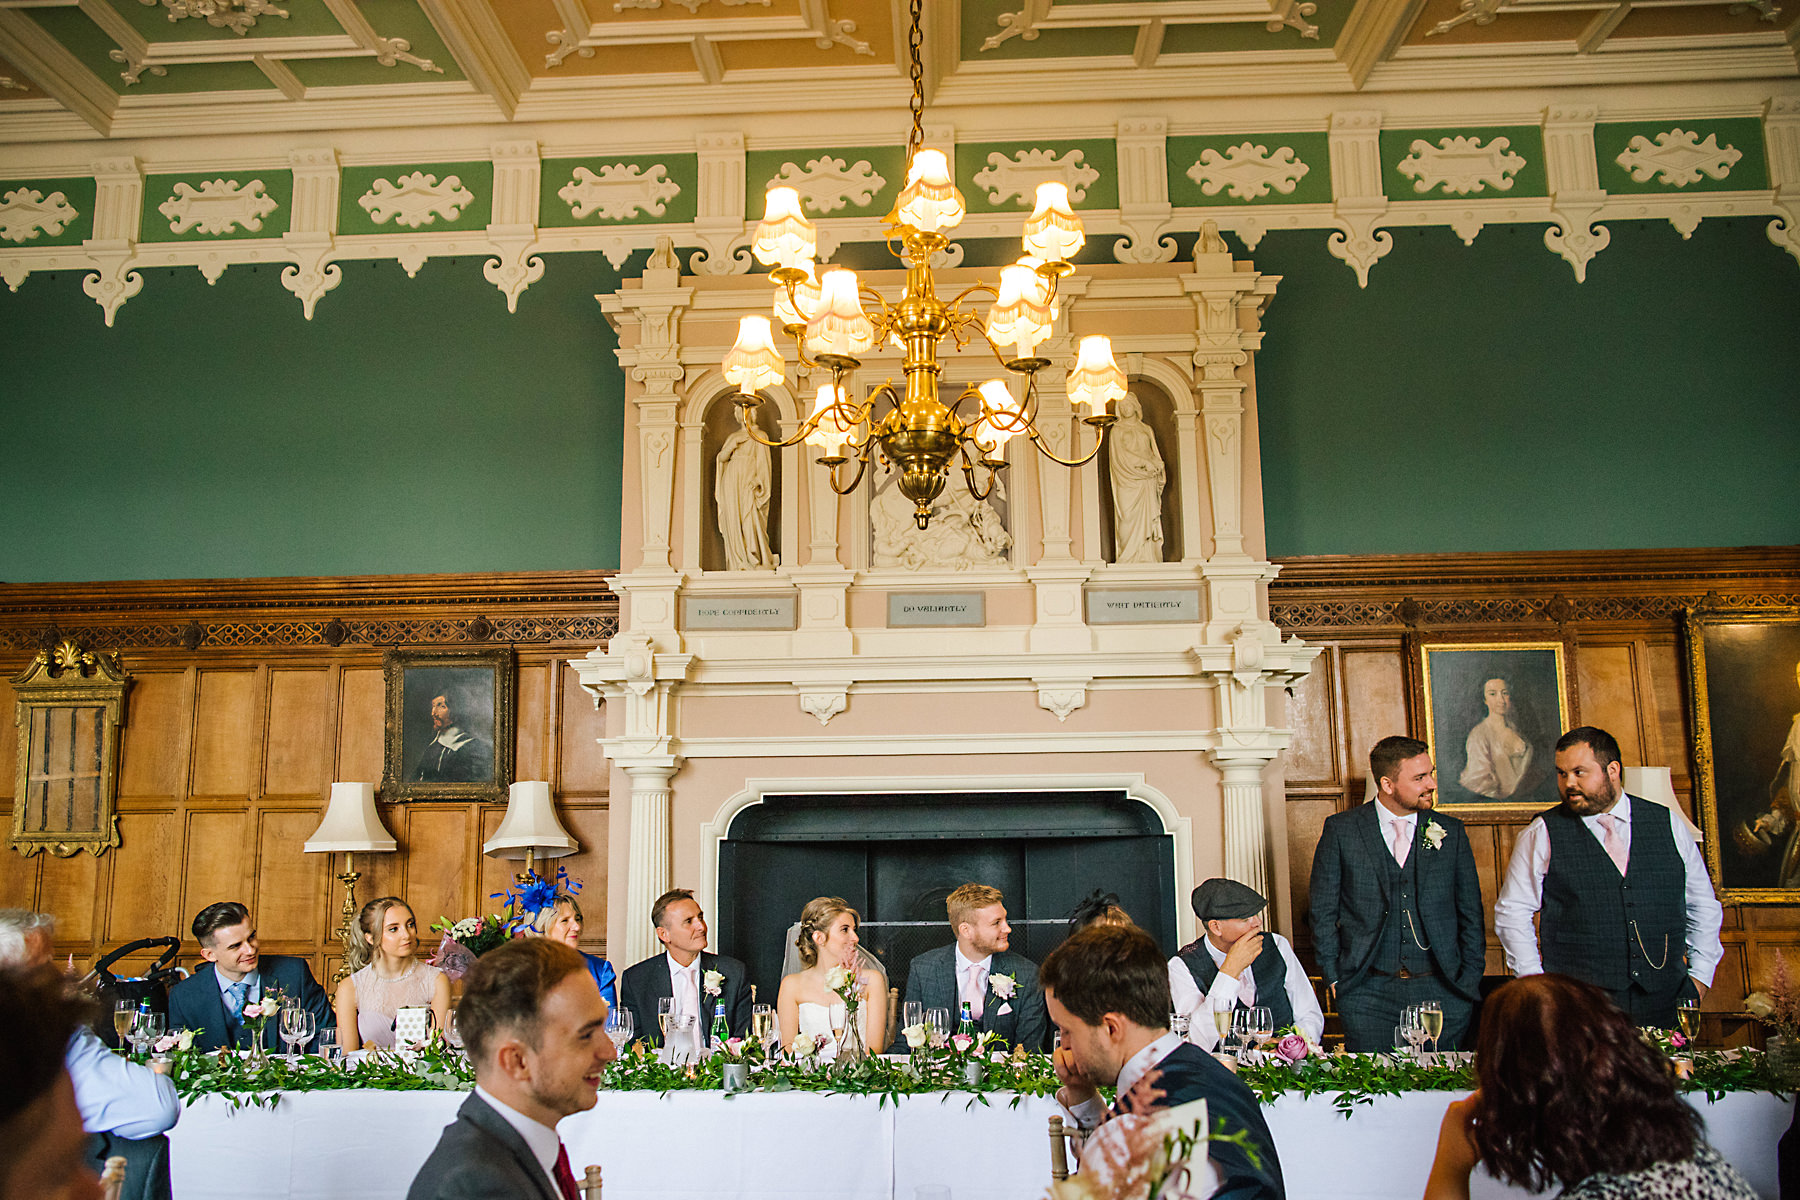 arley hall wedding breakfast room